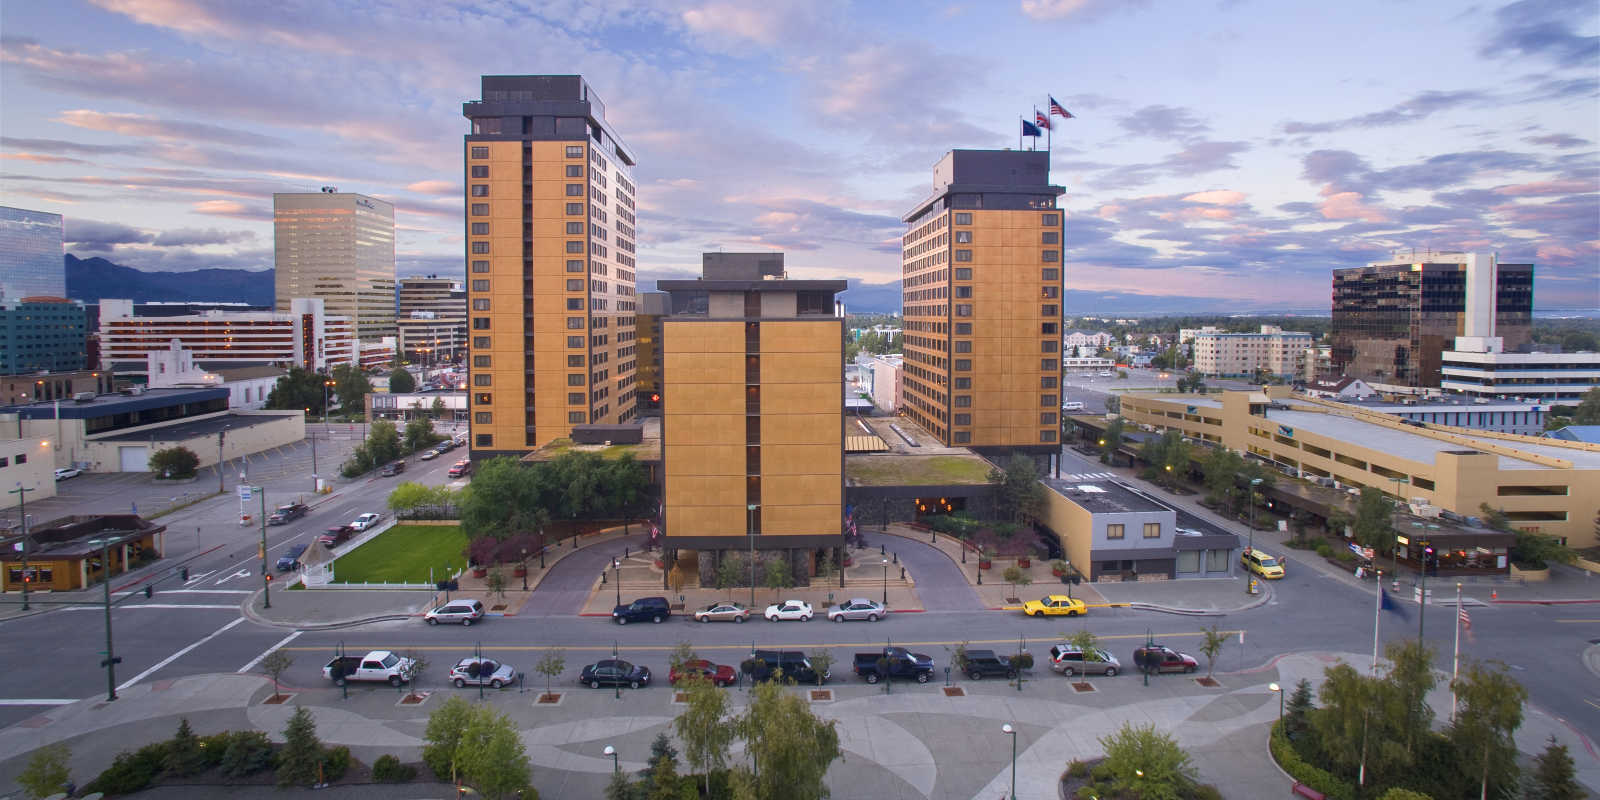 Alaska Hotels Anchorage Lodging Visit Anchorage